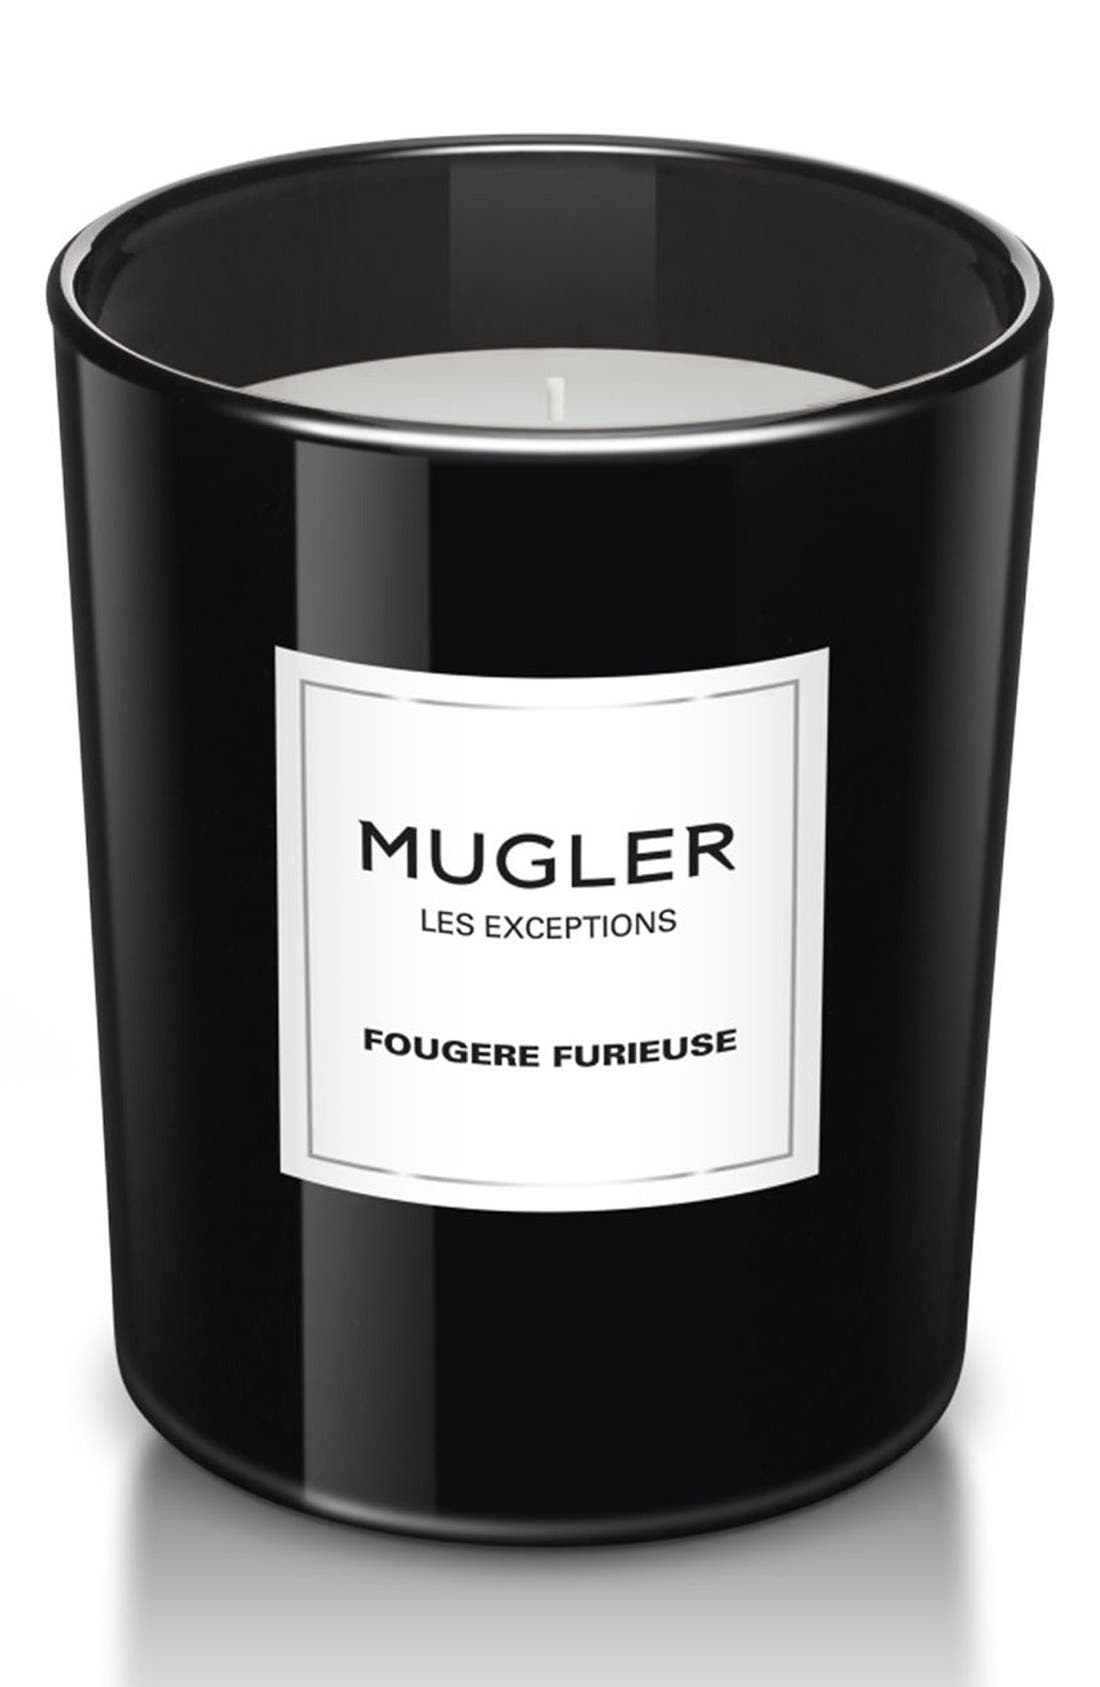 Mugler 'Les Exceptions - Fougere Furieuse' Candle,                             Main thumbnail 1, color,                             No Color